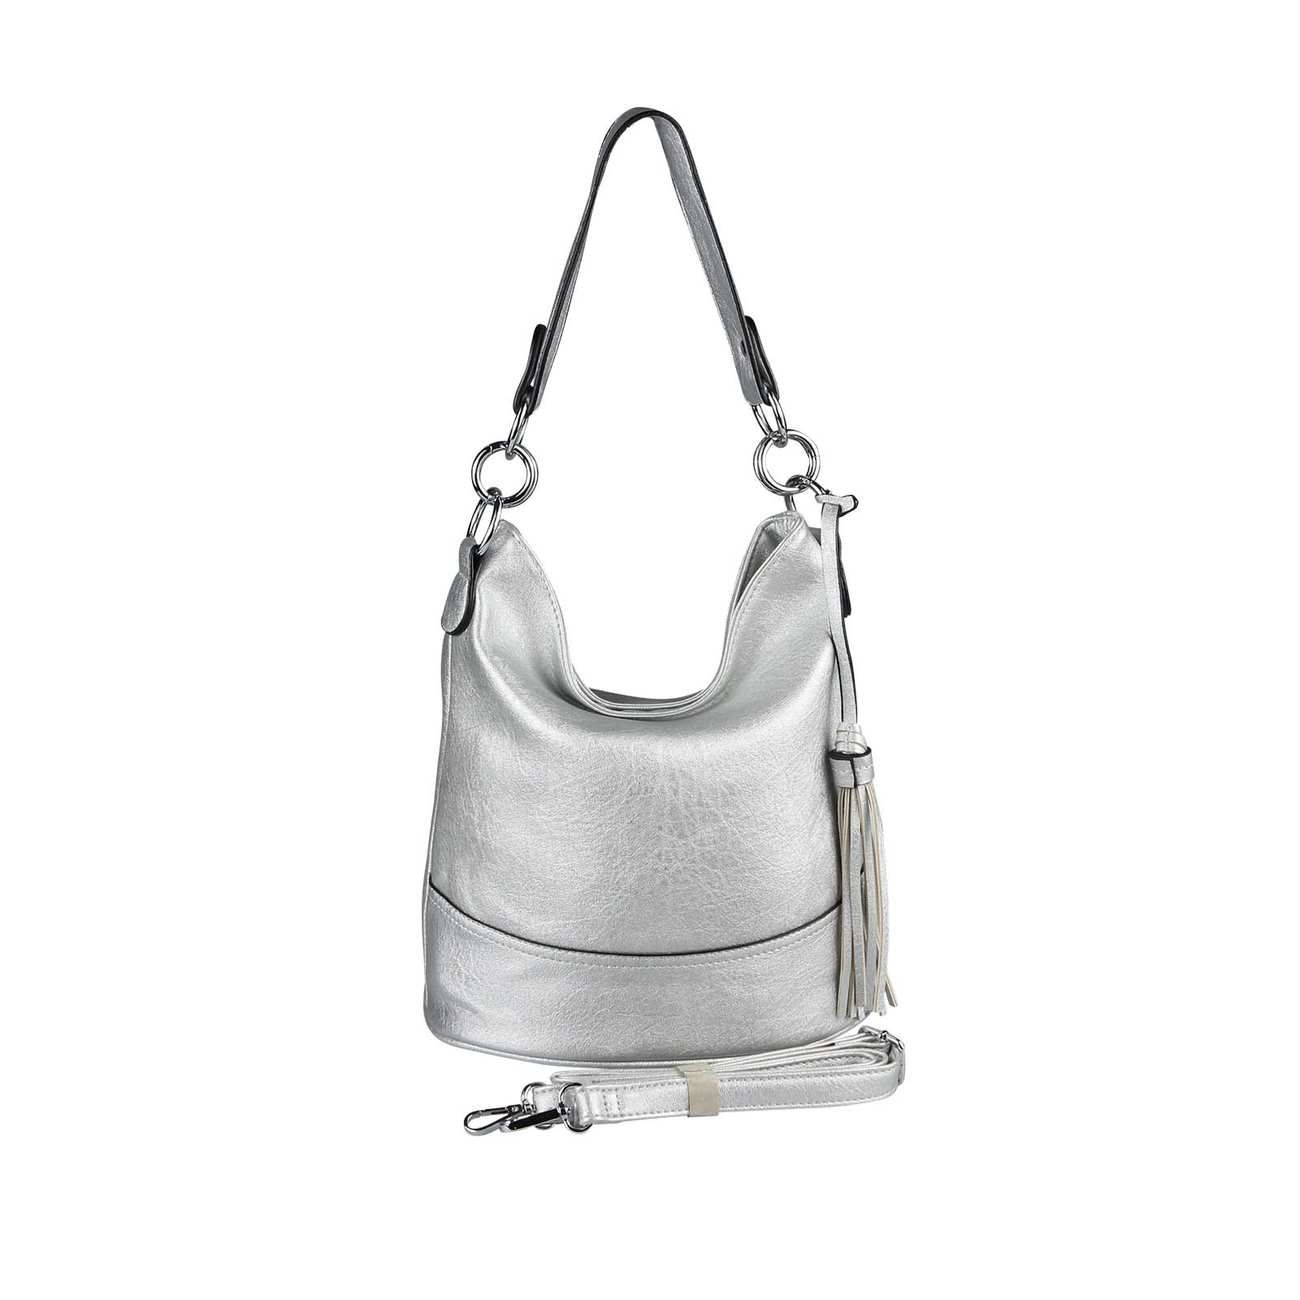 Photo of DAMEN TASCHE HOBO-BAG Shopper Umhängetasche Handtasche Schulterta